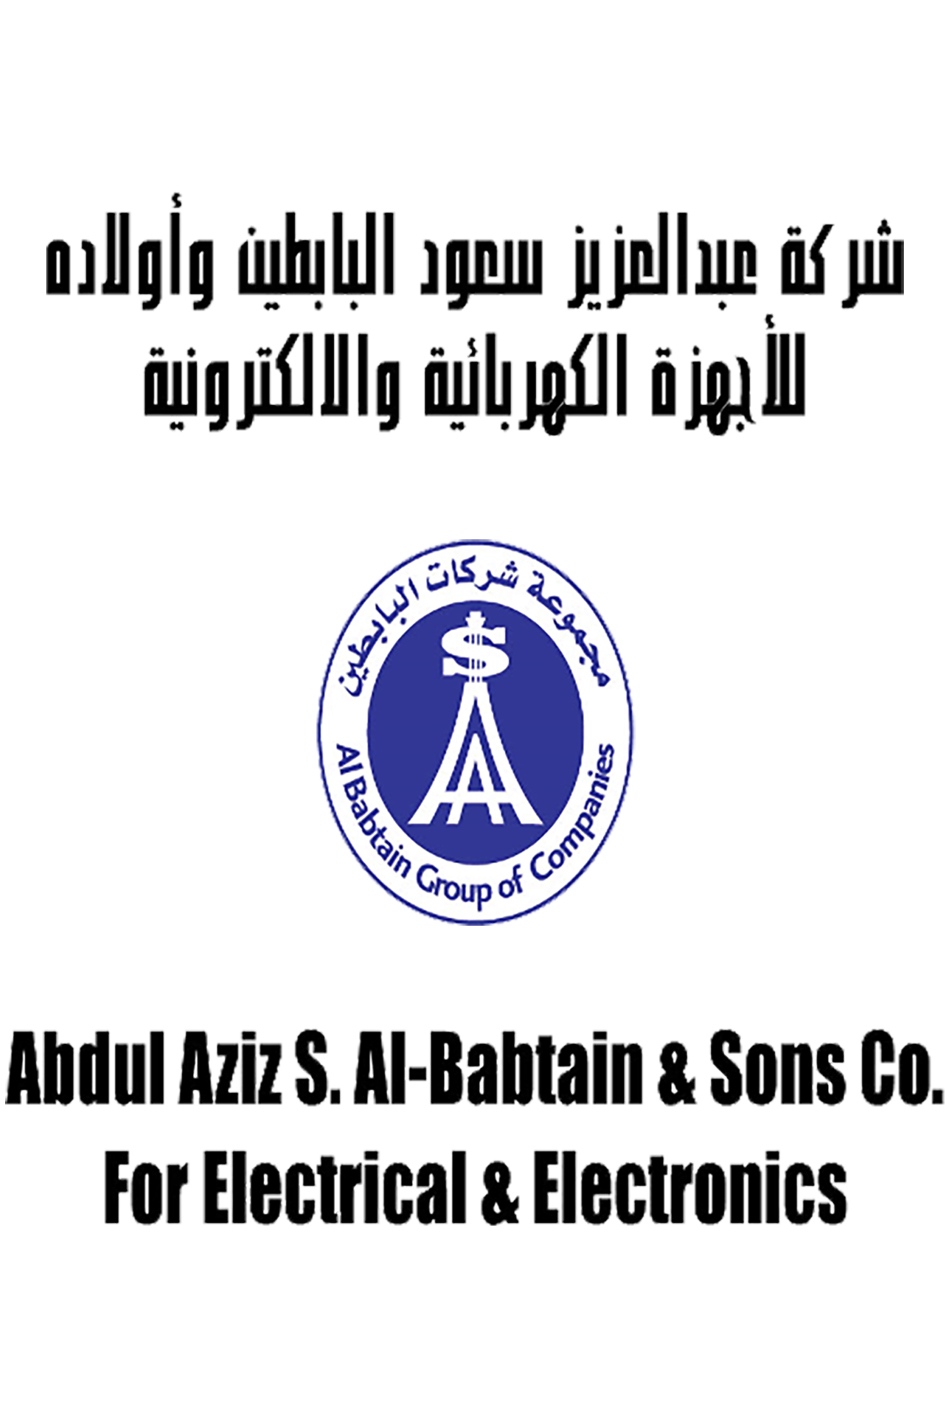 Abdul Aziz S.AL-Babtain & Sons Co.